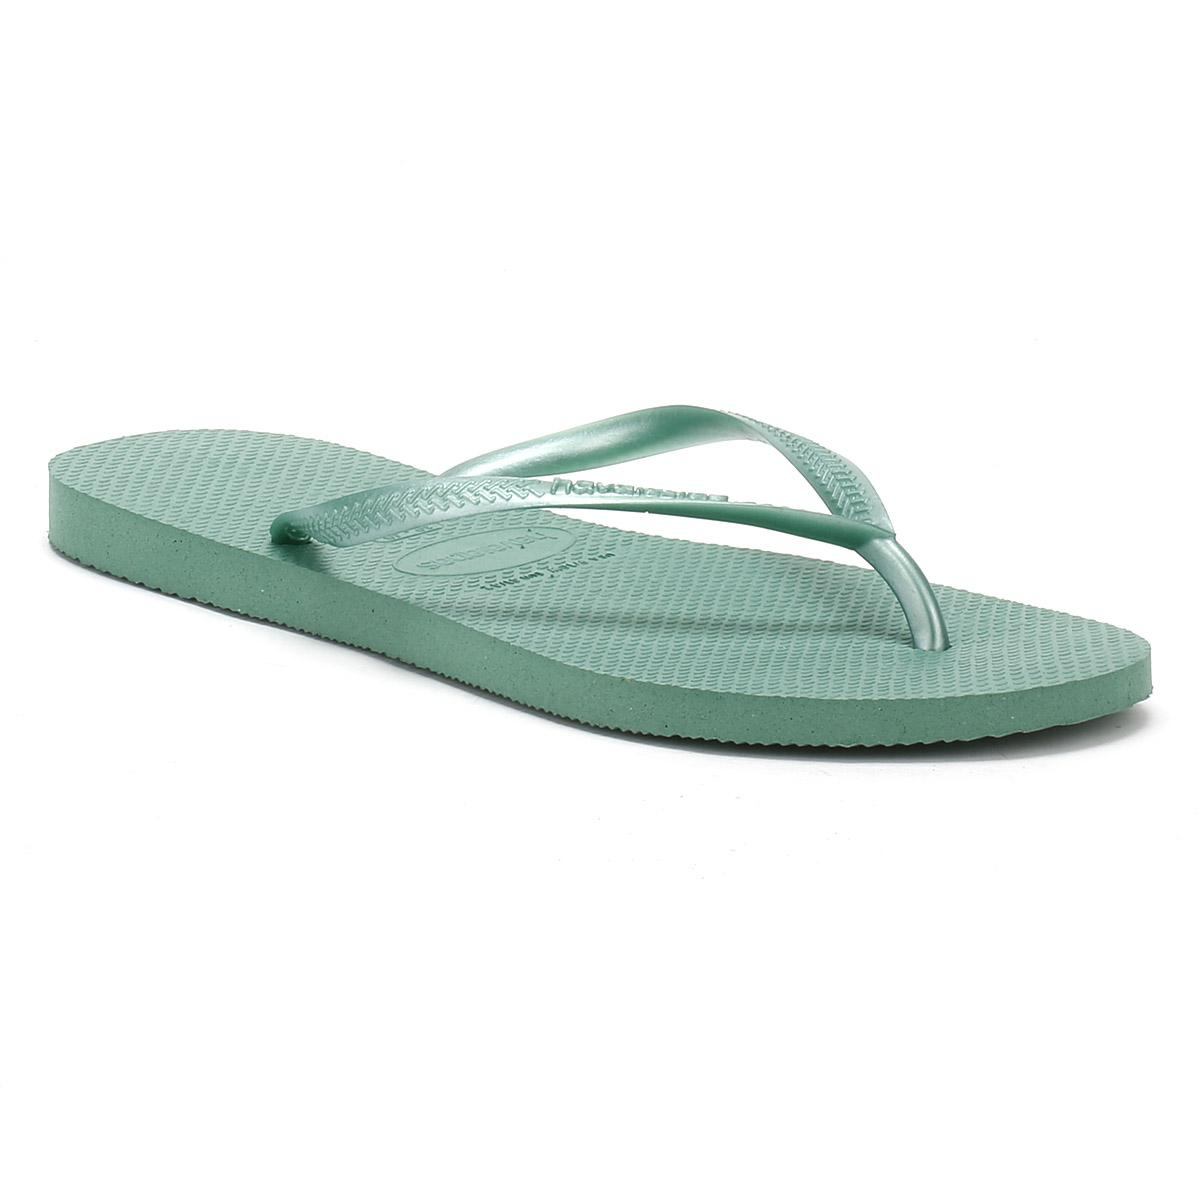 3fd262e2b981c Lyst - Havaianas Womens Green Tea Slim Flip Flops in Green